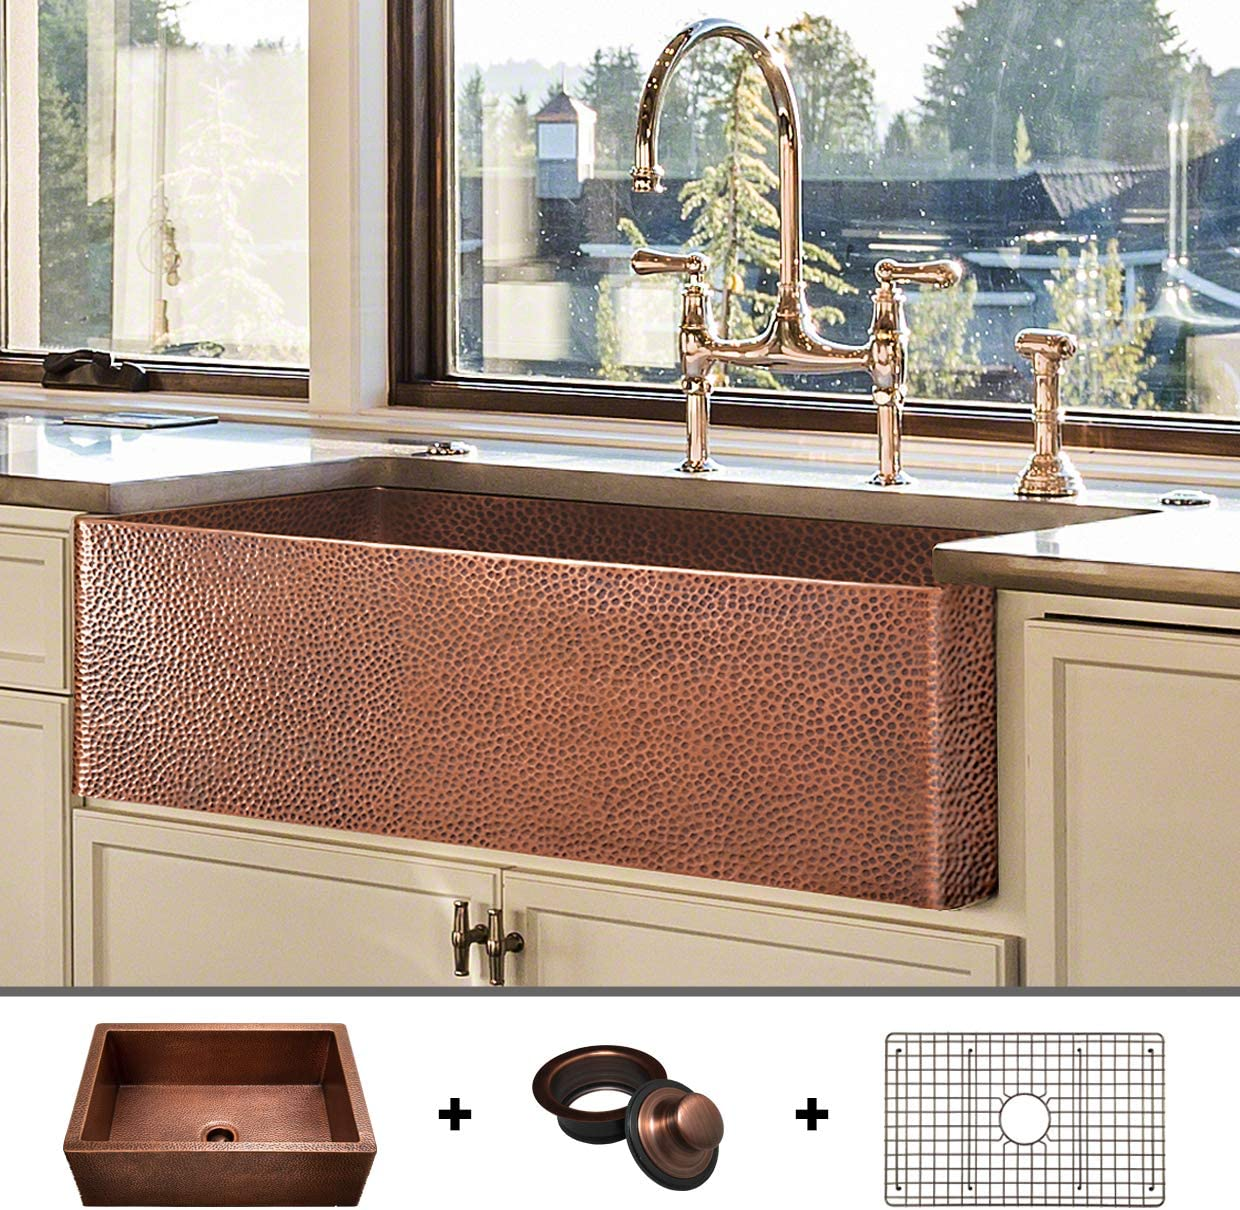 HEAVY-GAUGE 12-Gauge Luxury 33-Inch Modern Copper Farmhouse Sink 52.6 LBS Pure Copper , Apron Front, Single Bowl, Antique Copper Finish, Grid and Flange Included, FSW1105 by Fossil Blu